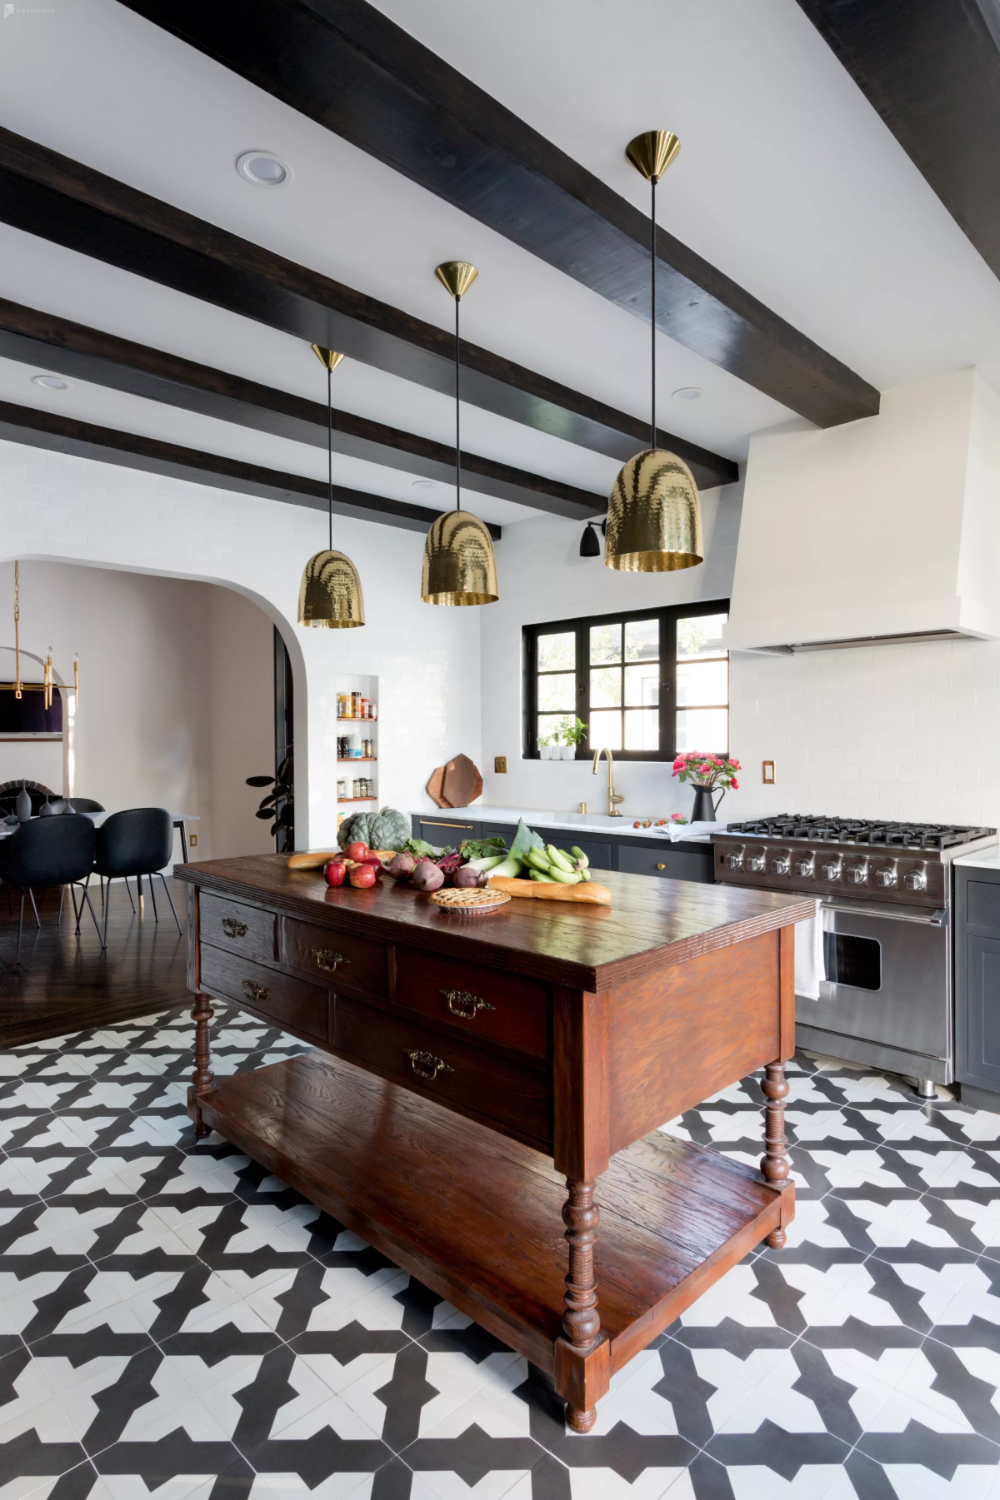 Modern Spanish Style Home - Designer Furnishings - Chef's Kitchen in Los Angeles